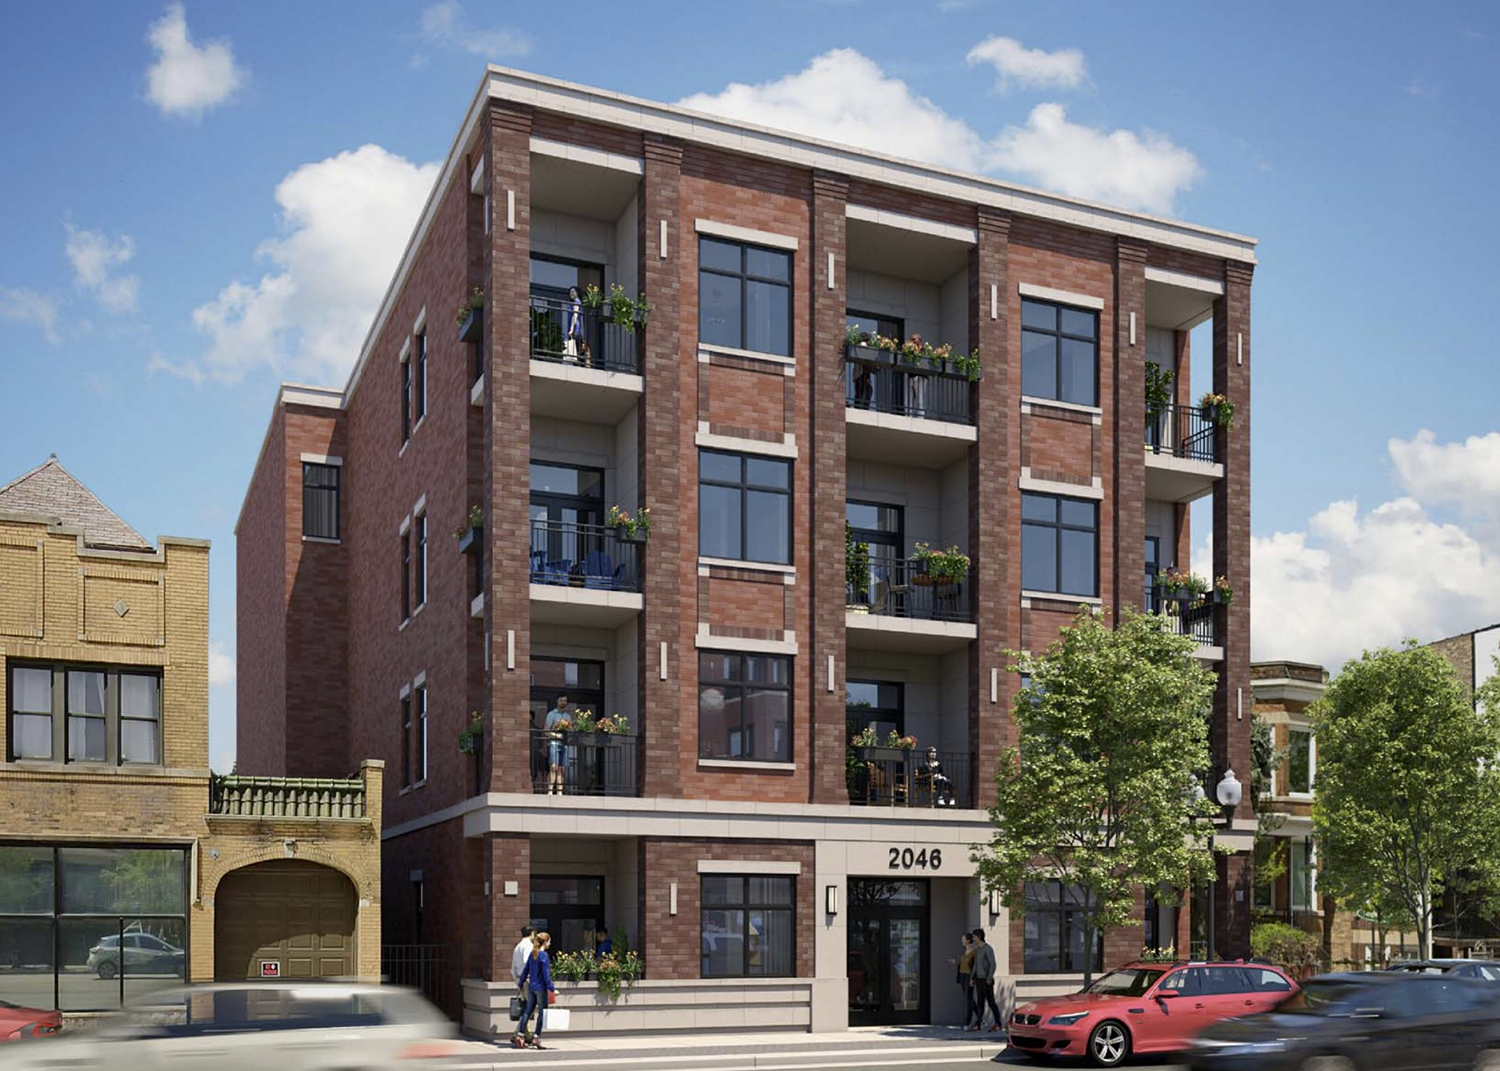 2046 W Irving Park Road. Rendering by SPACE Architects + Planners